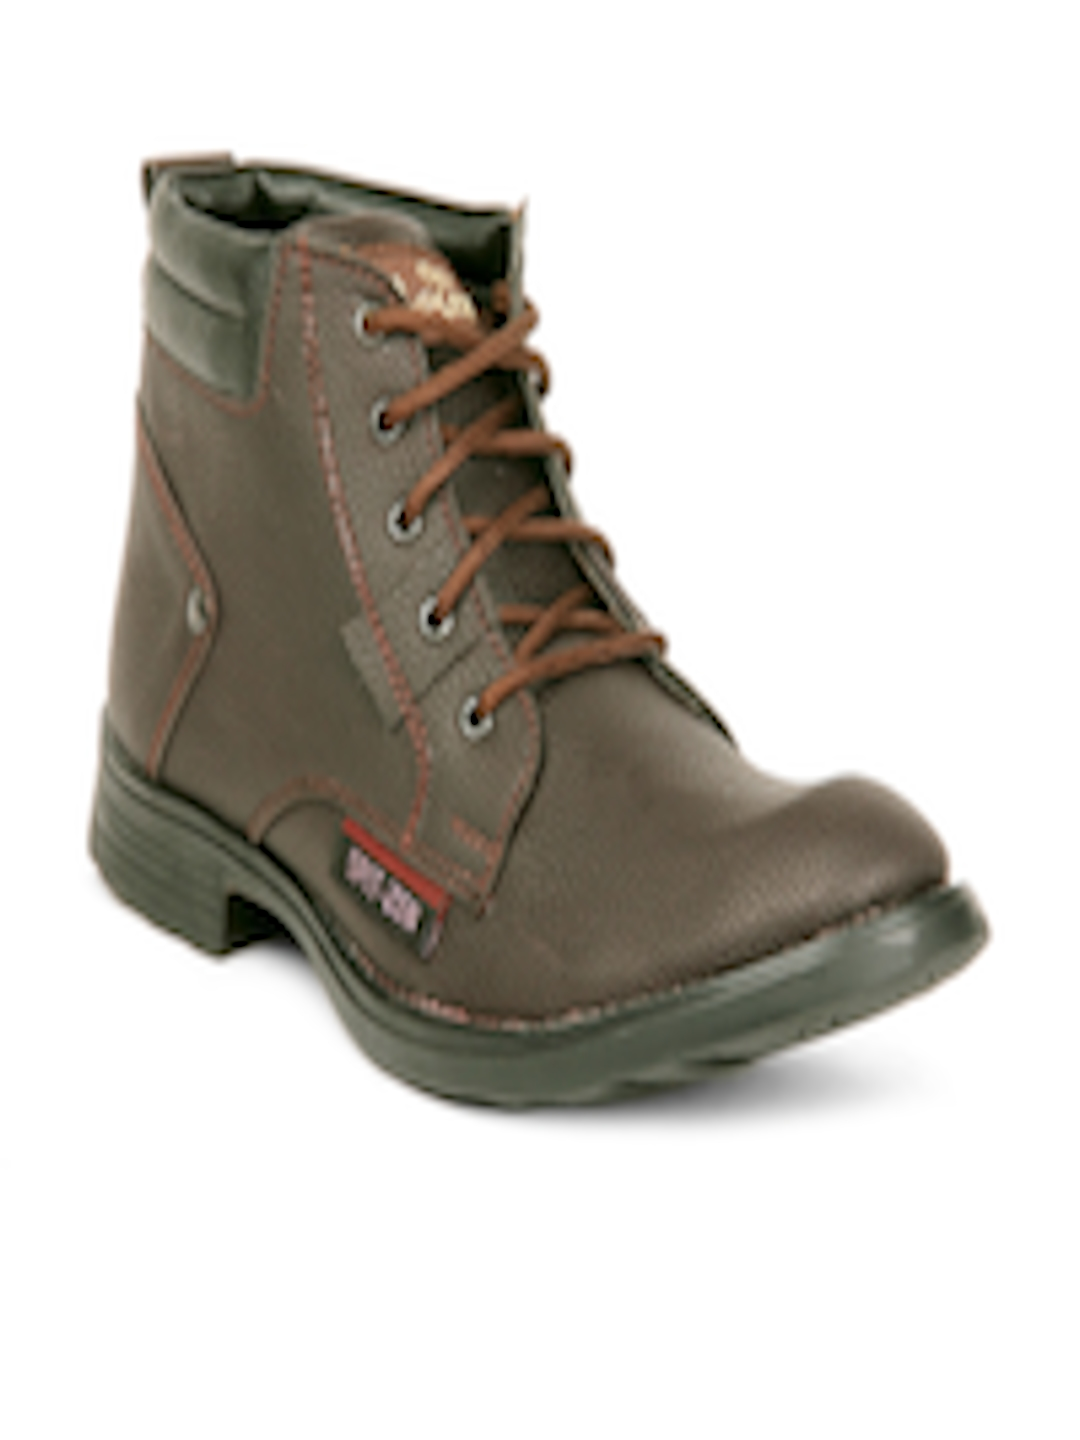 Buy Do Bhai Men Brown Boots - Casual Shoes for Men 415228 ...